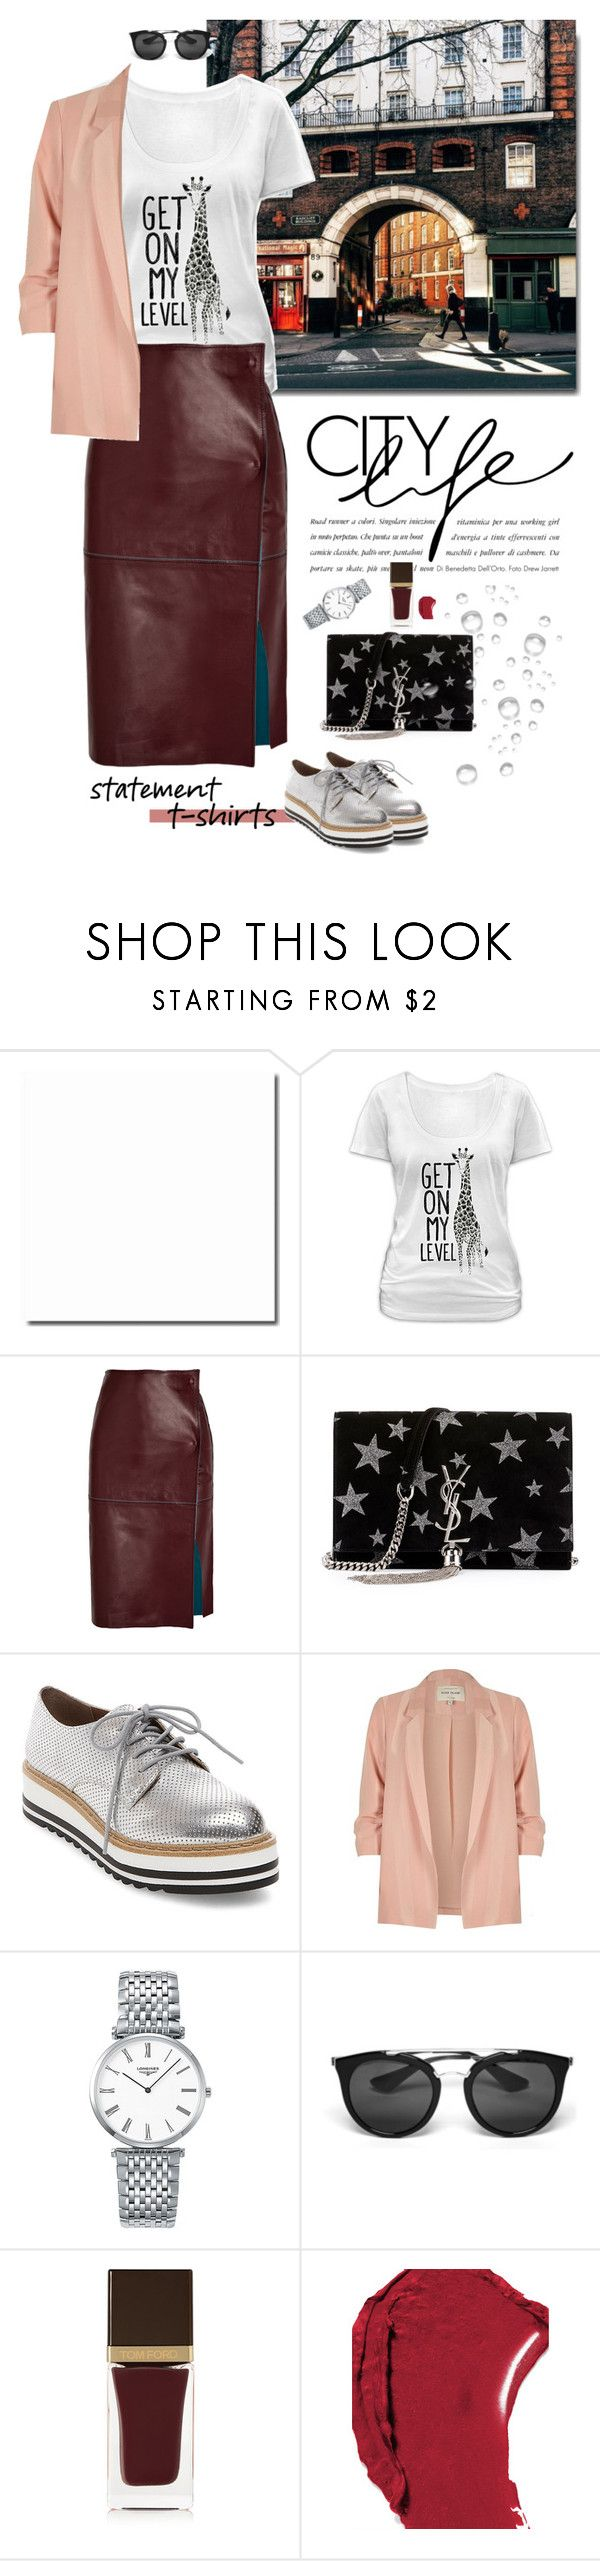 """Say What: Statement T-Shirts"" by frechelibelle ❤ liked on Polyvore featuring Goodie Two Sleeves, By Malene Birger, Yves Saint Laurent, Steve Madden, River Island, Longines, Prada, Tom Ford and Chanel"